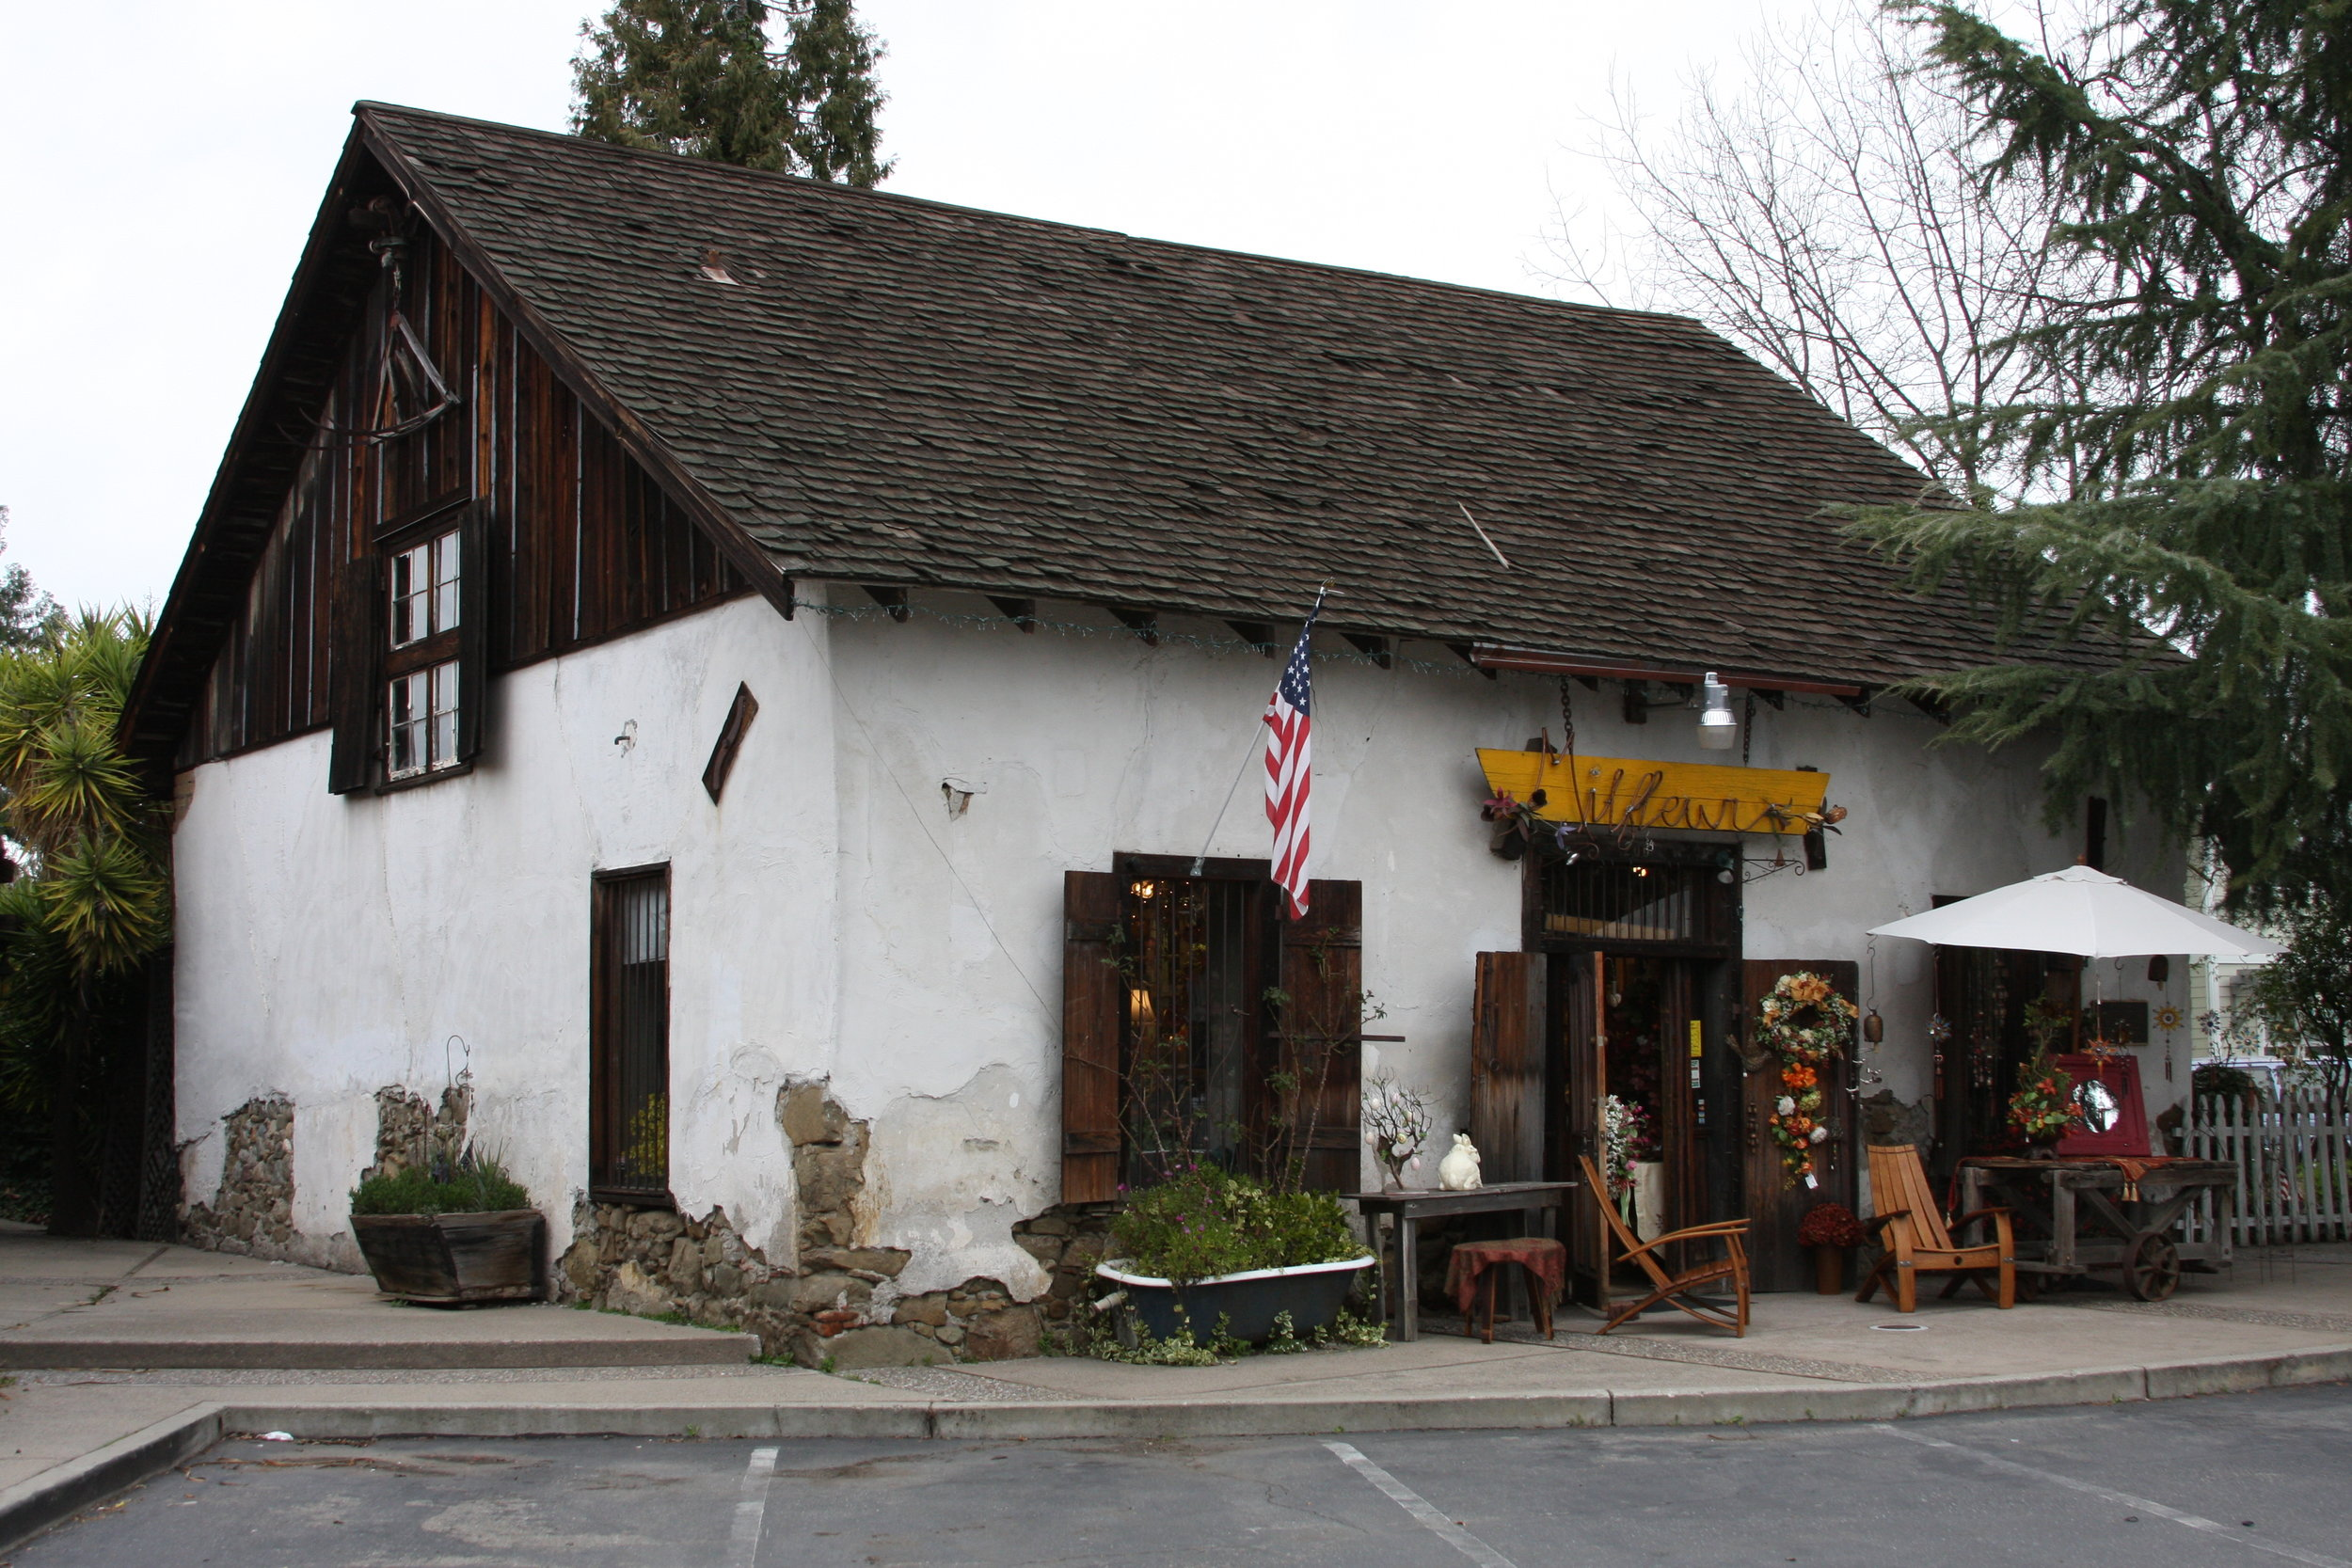 kottinger barn pleasanton.jpg